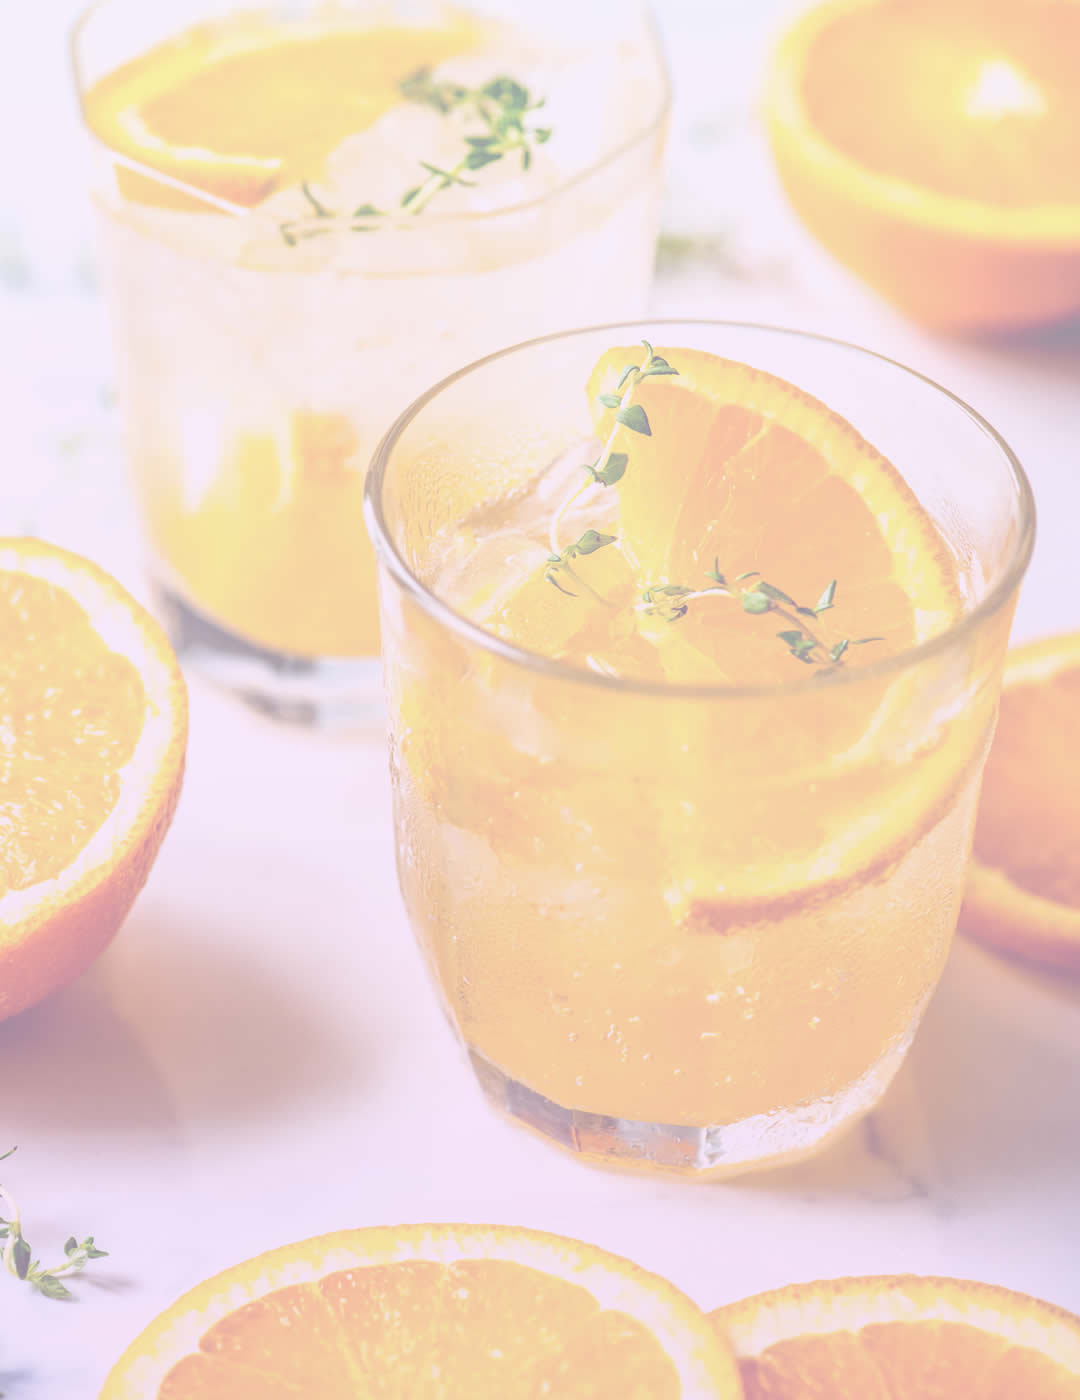 hydrating drinks and juices as a part of mental health recovery